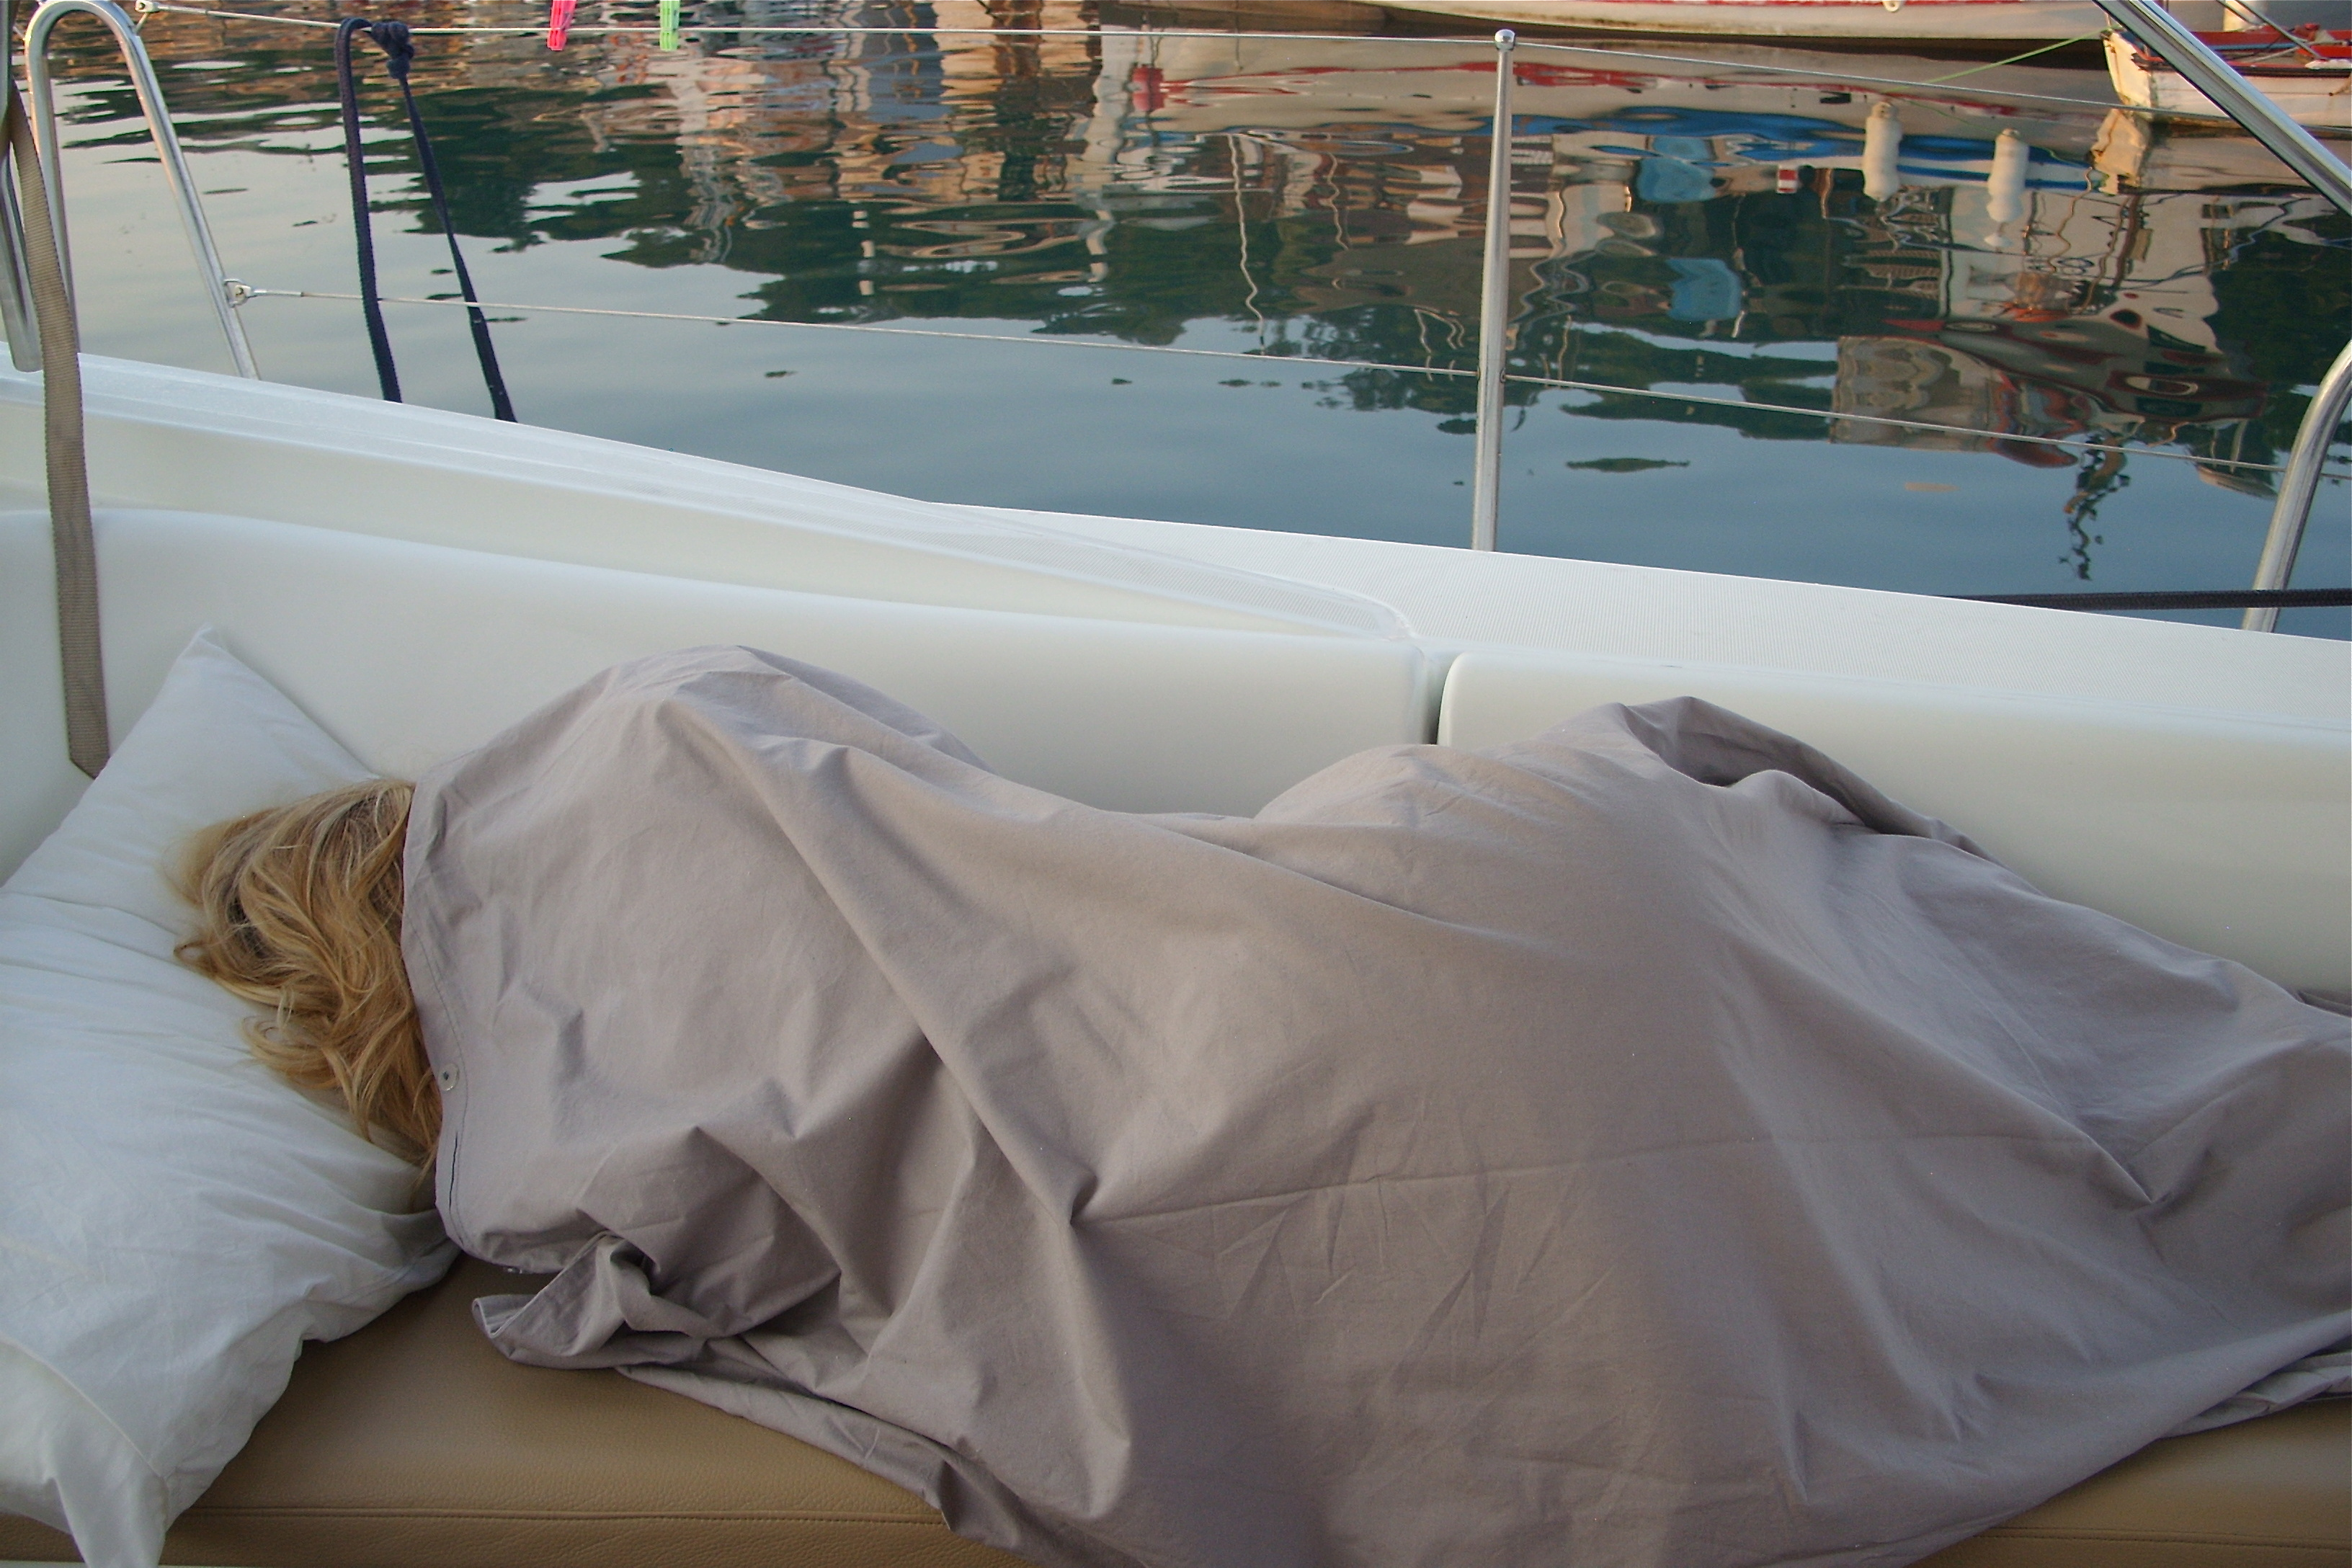 Blonde woman sleeping under a sheet on a boat